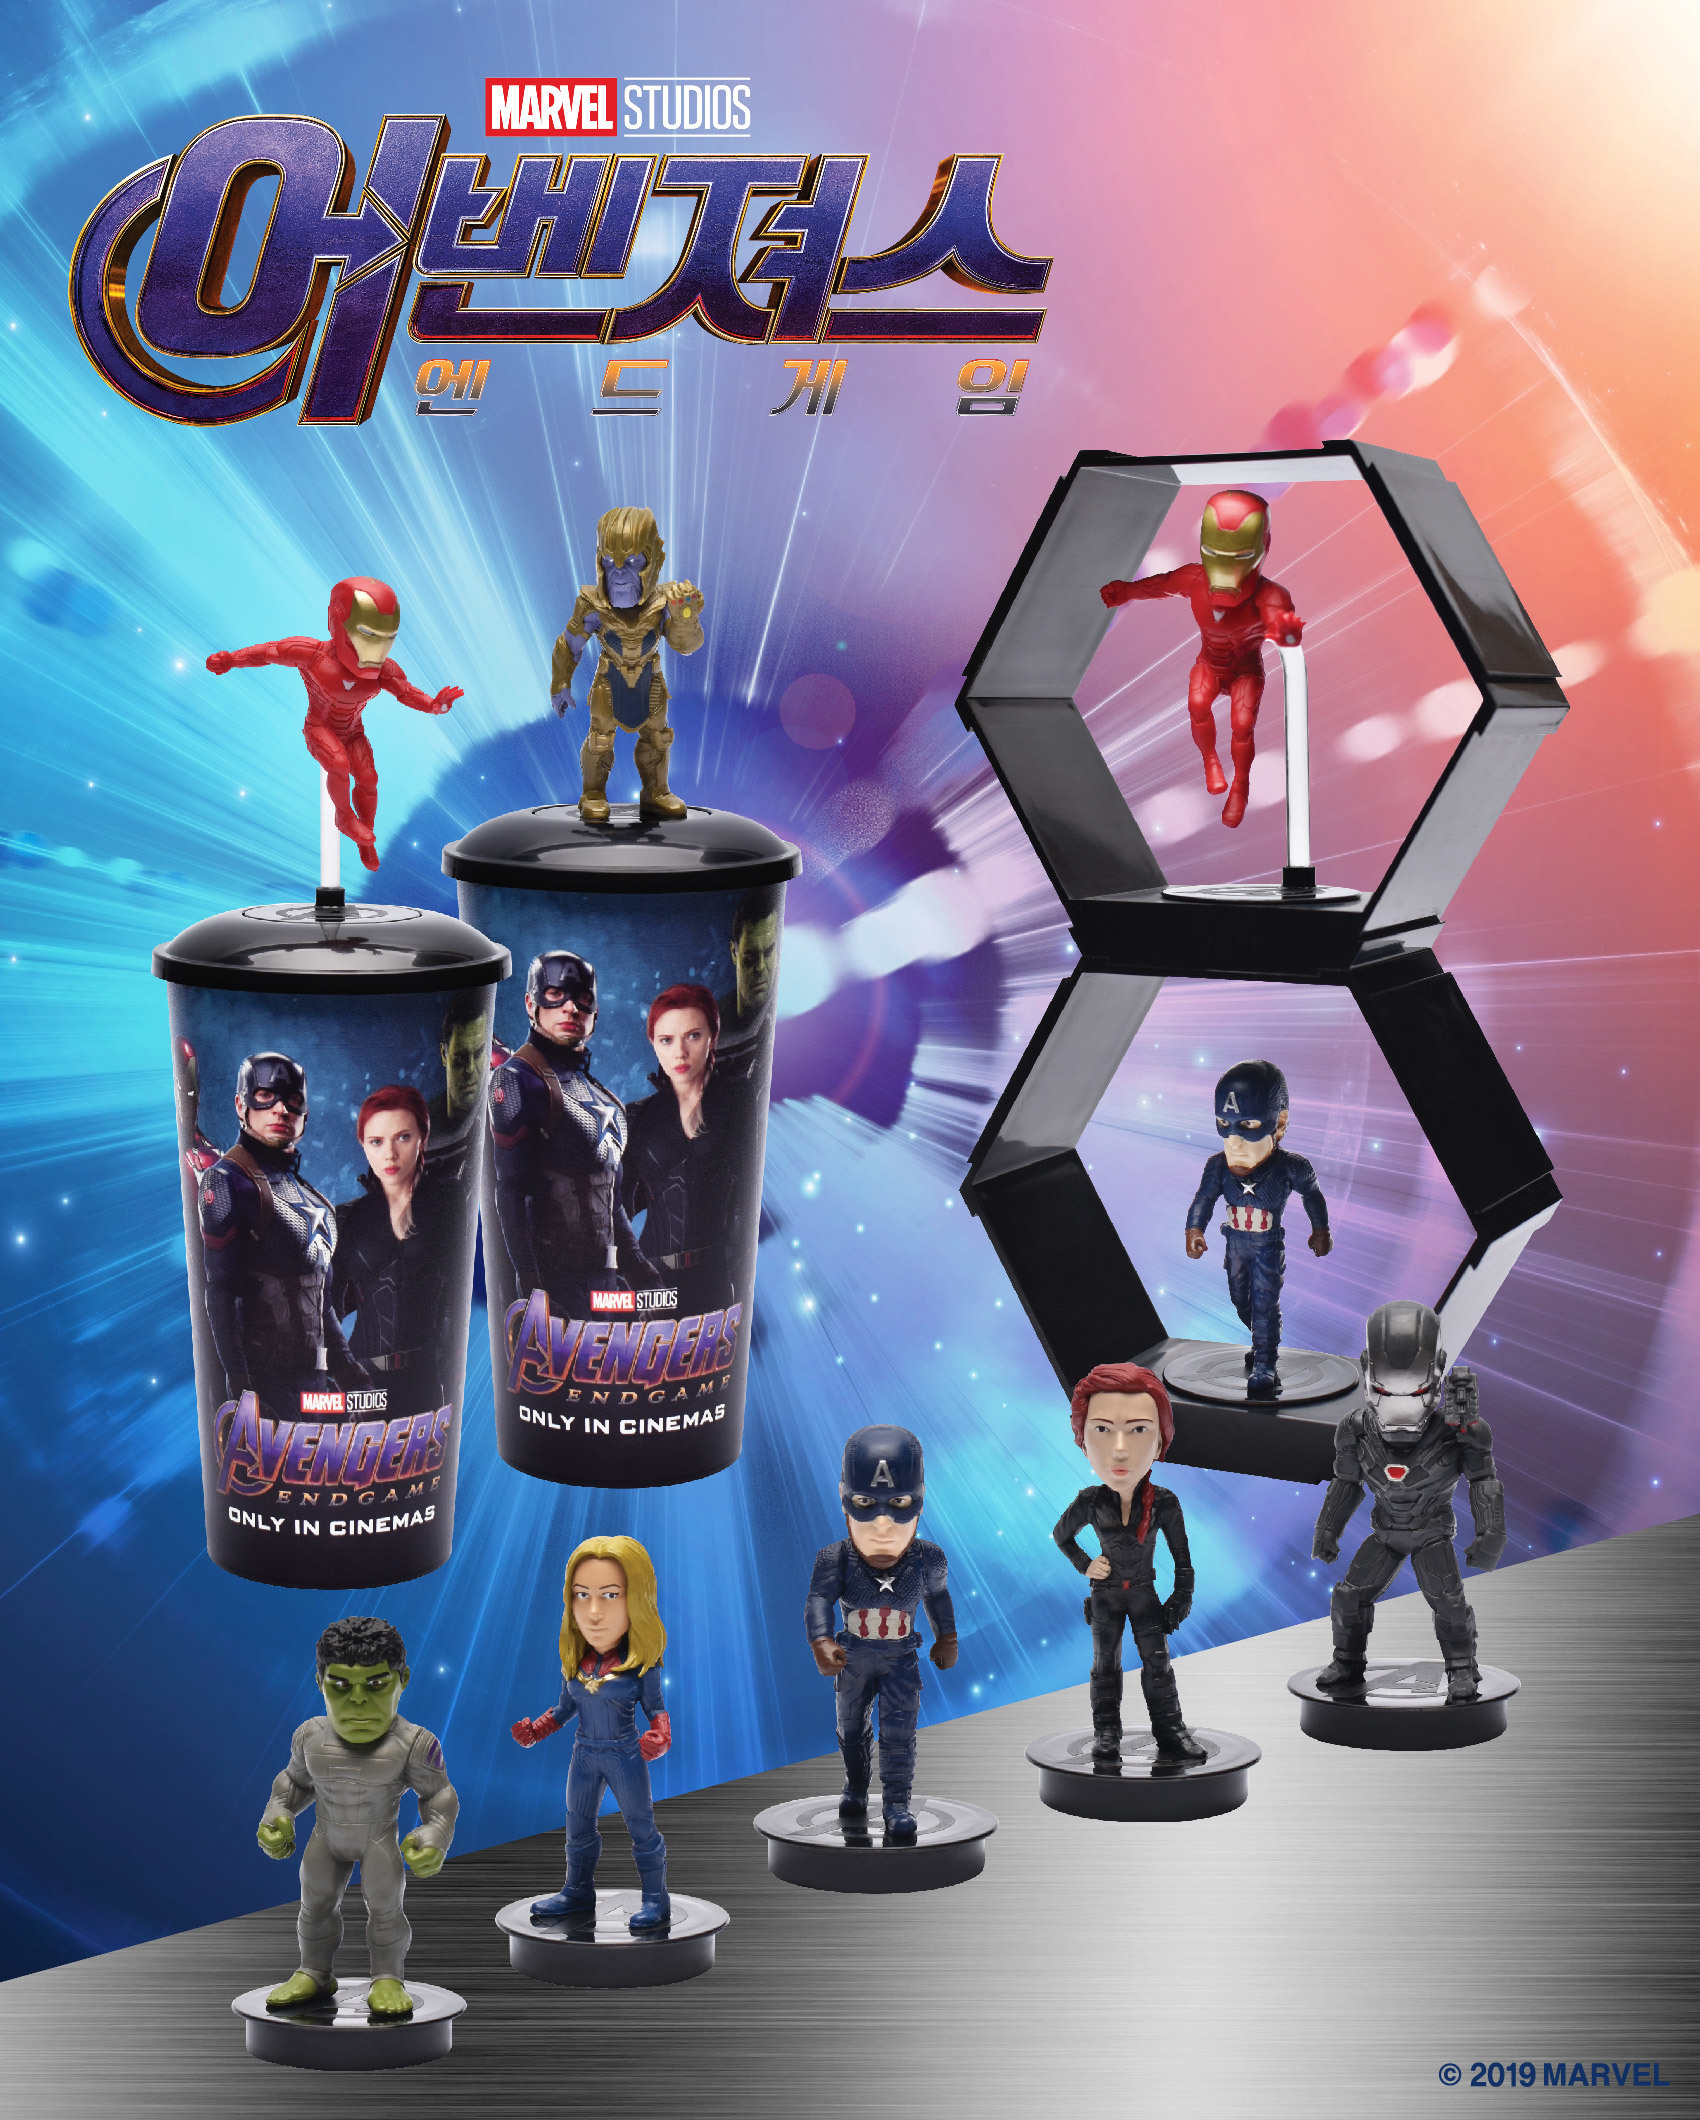 'Avengers: Endgame, 2019' - TOPPER CUP & HEXAGON - CGV